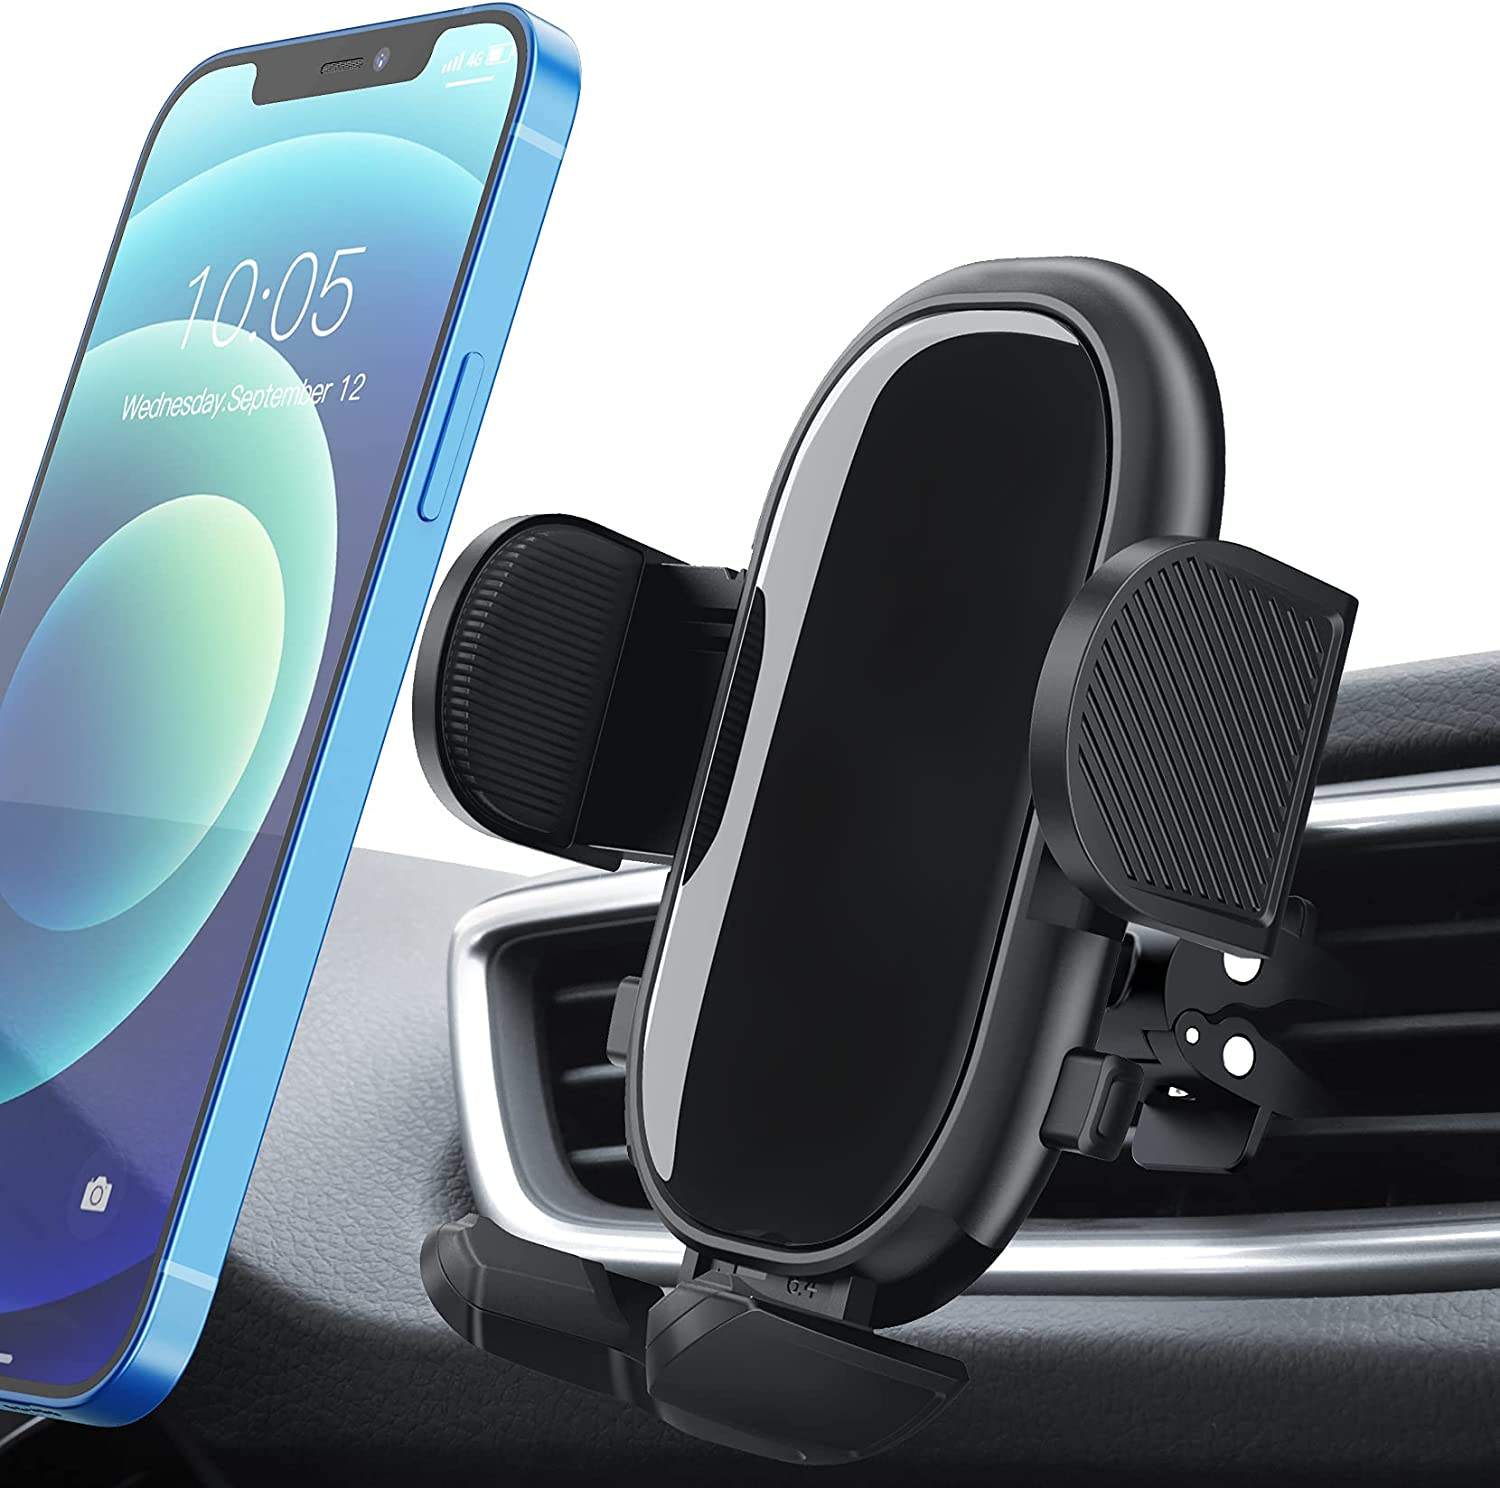 Car Phone Mount, xMpow Air Vent Car Phone Holder with Stable Clip, Adjustable Support Feet Car Mount Compatible with iPhone 12 SE 11 Pro Max XS XR, Galaxy Note 20 S20 S10 and More